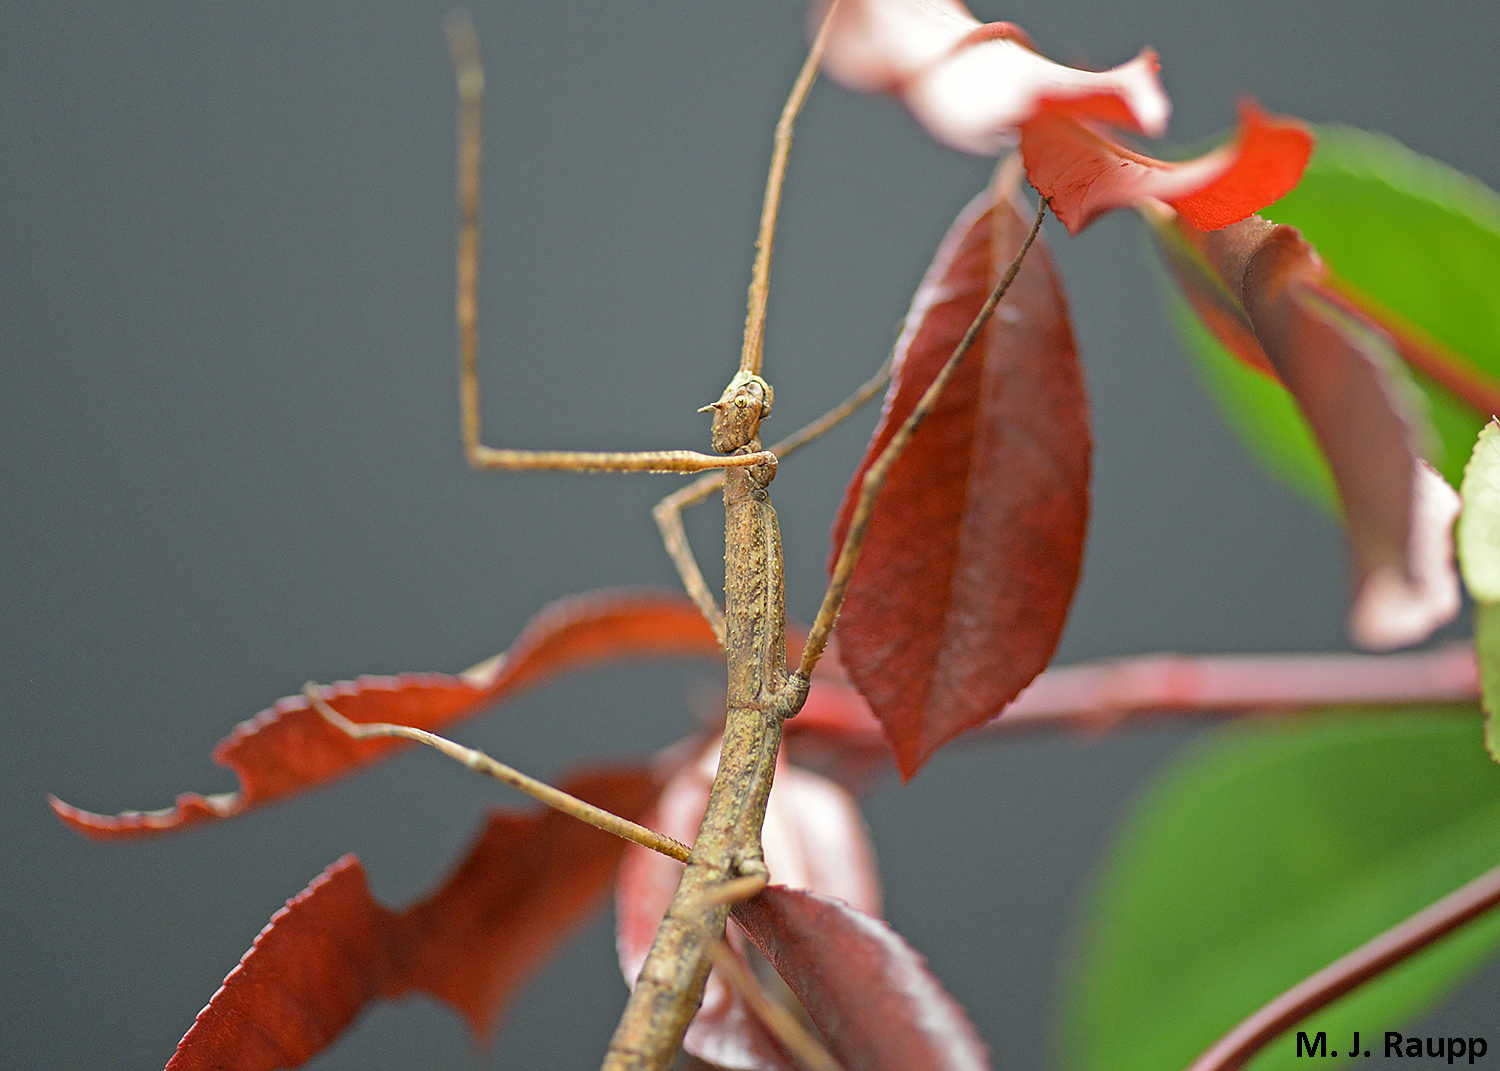 By remaining motionless for hours, this stick insect's masquerade has evolved to deceive visually astute predators.